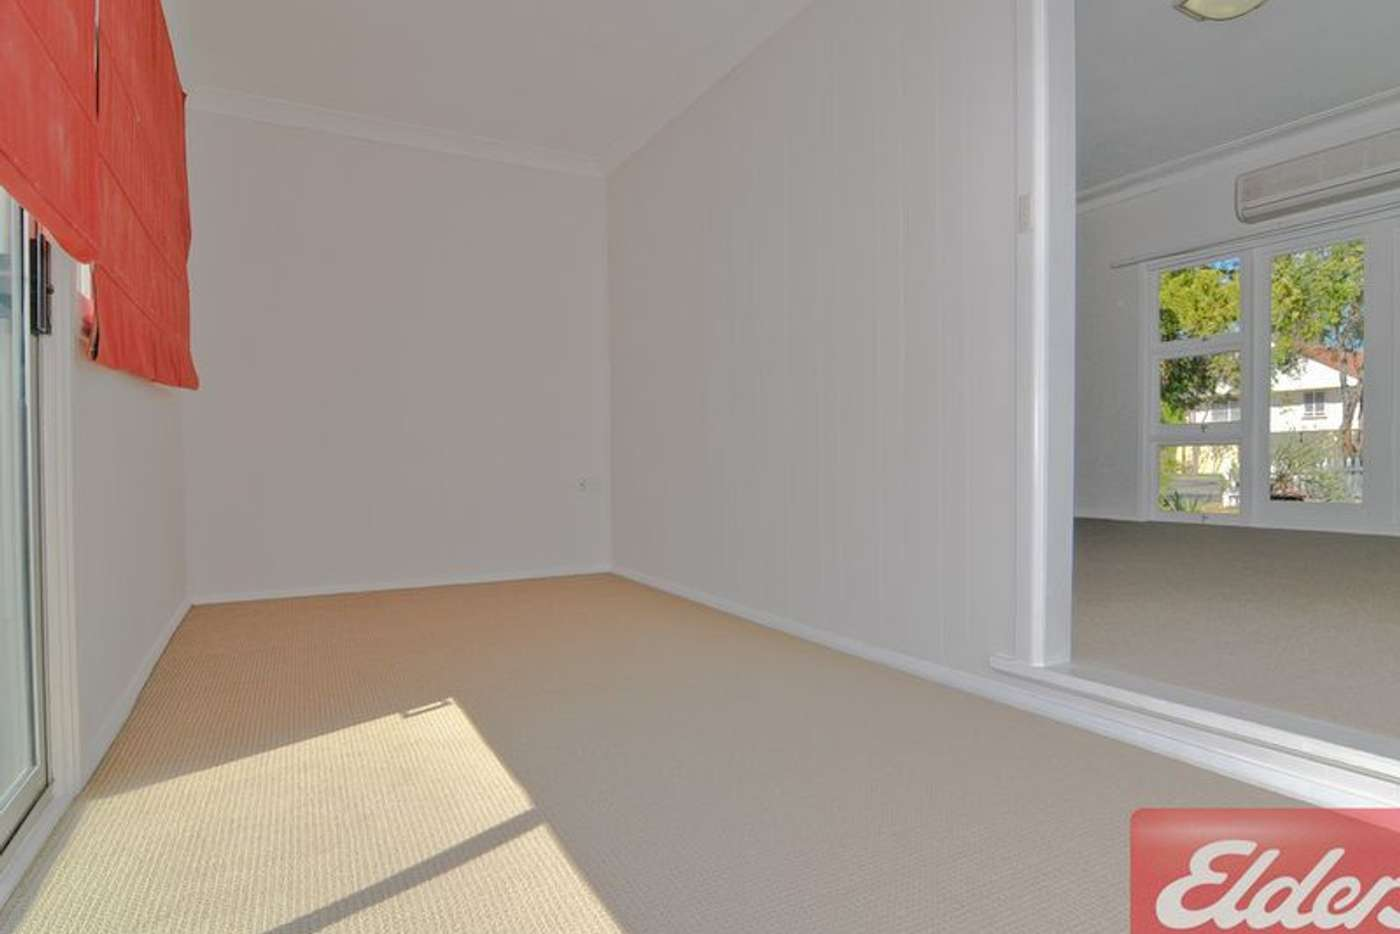 Sixth view of Homely house listing, 4 Carrington Street, Seven Hills NSW 2147